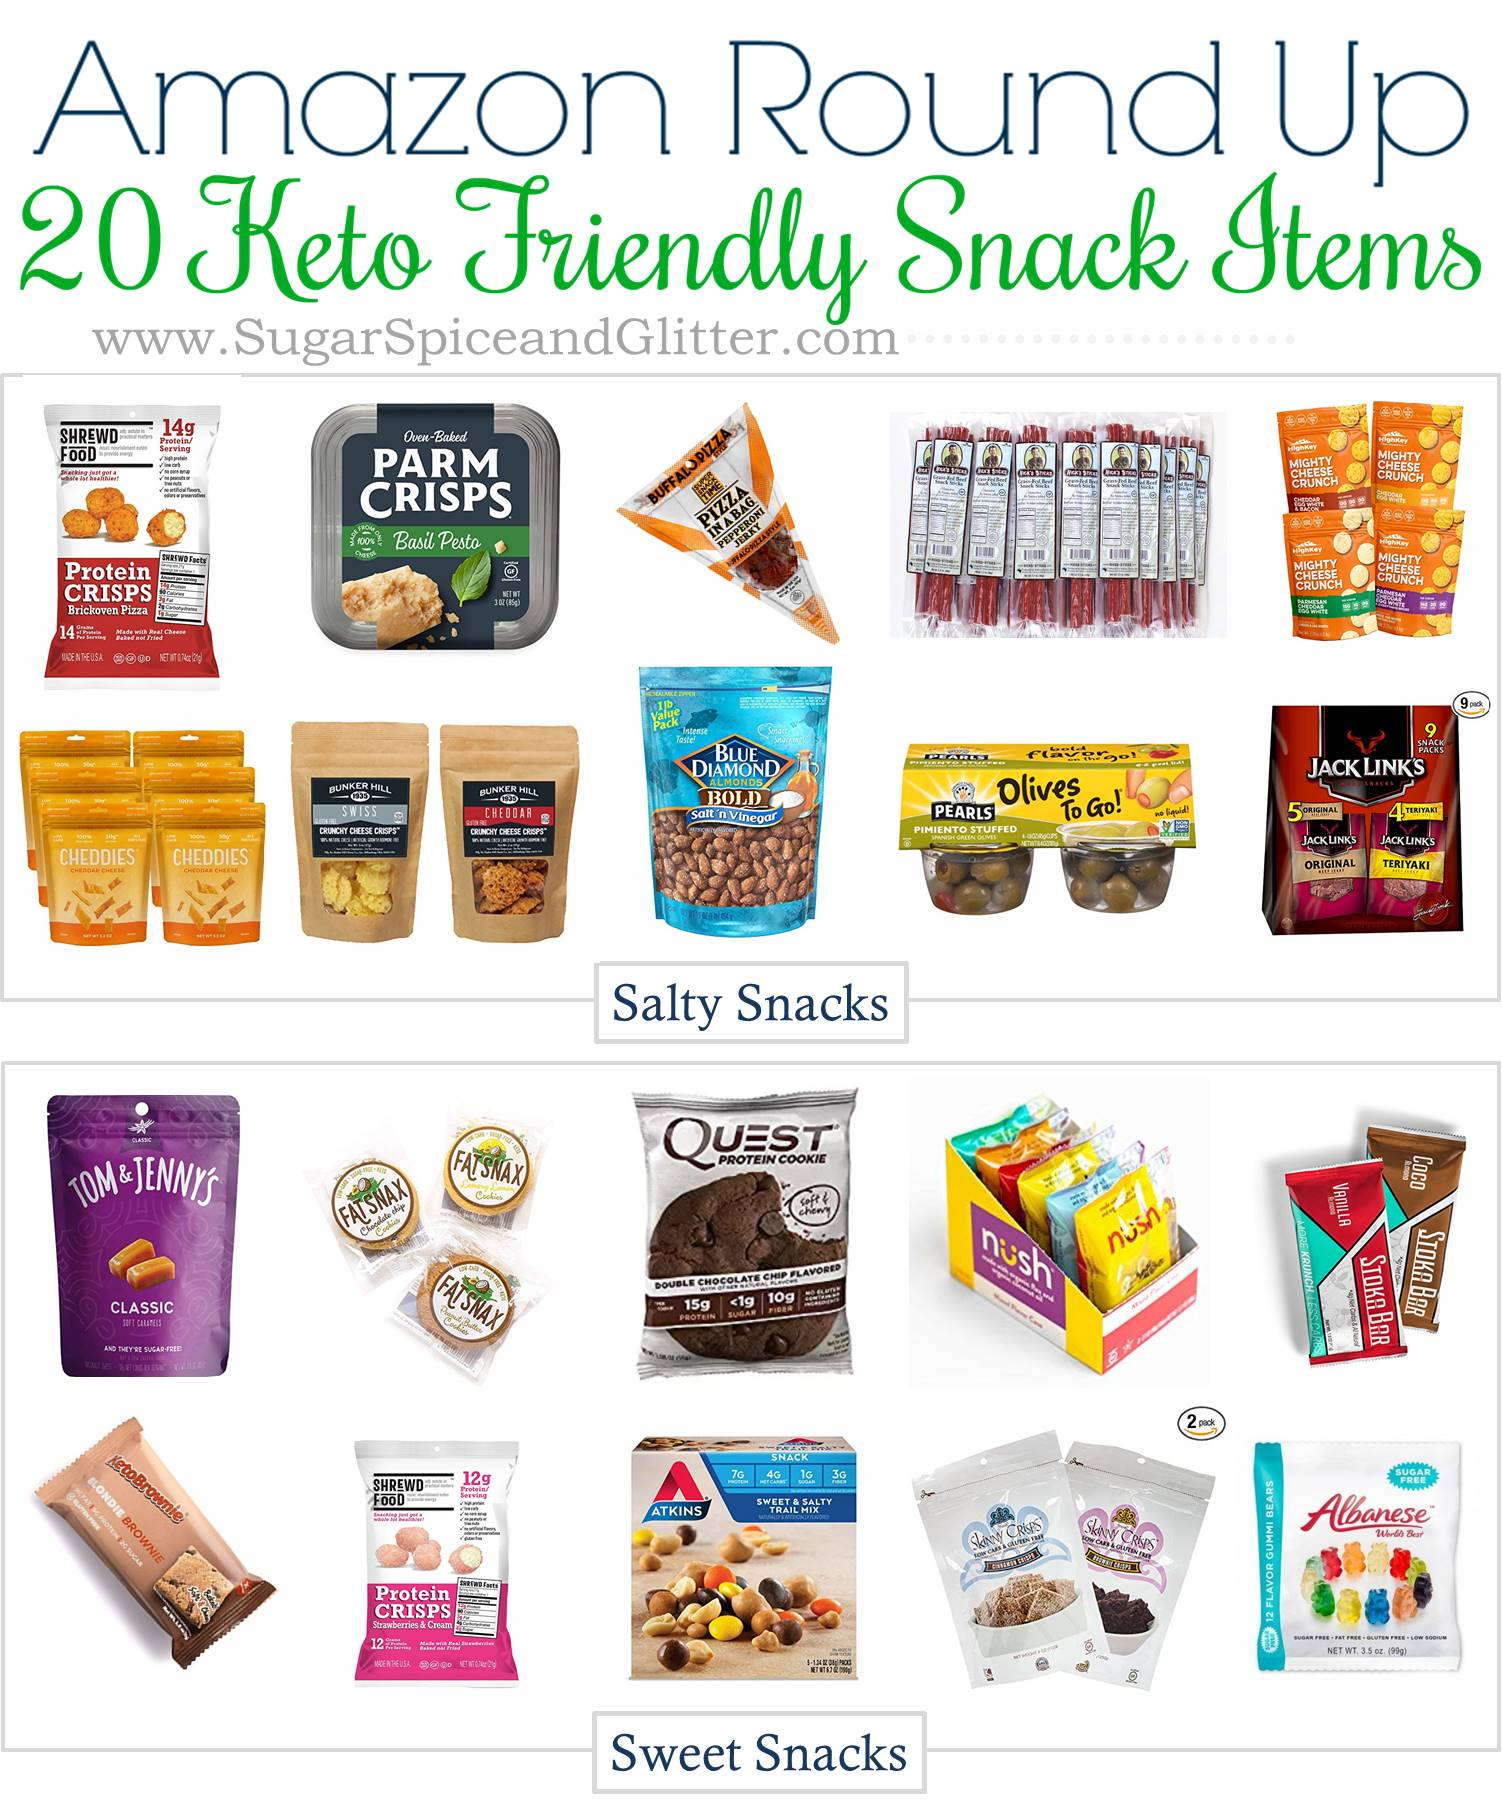 20 Keto Friendly Snacks that you can find on Amazon, both sweet and salty low carb snacks